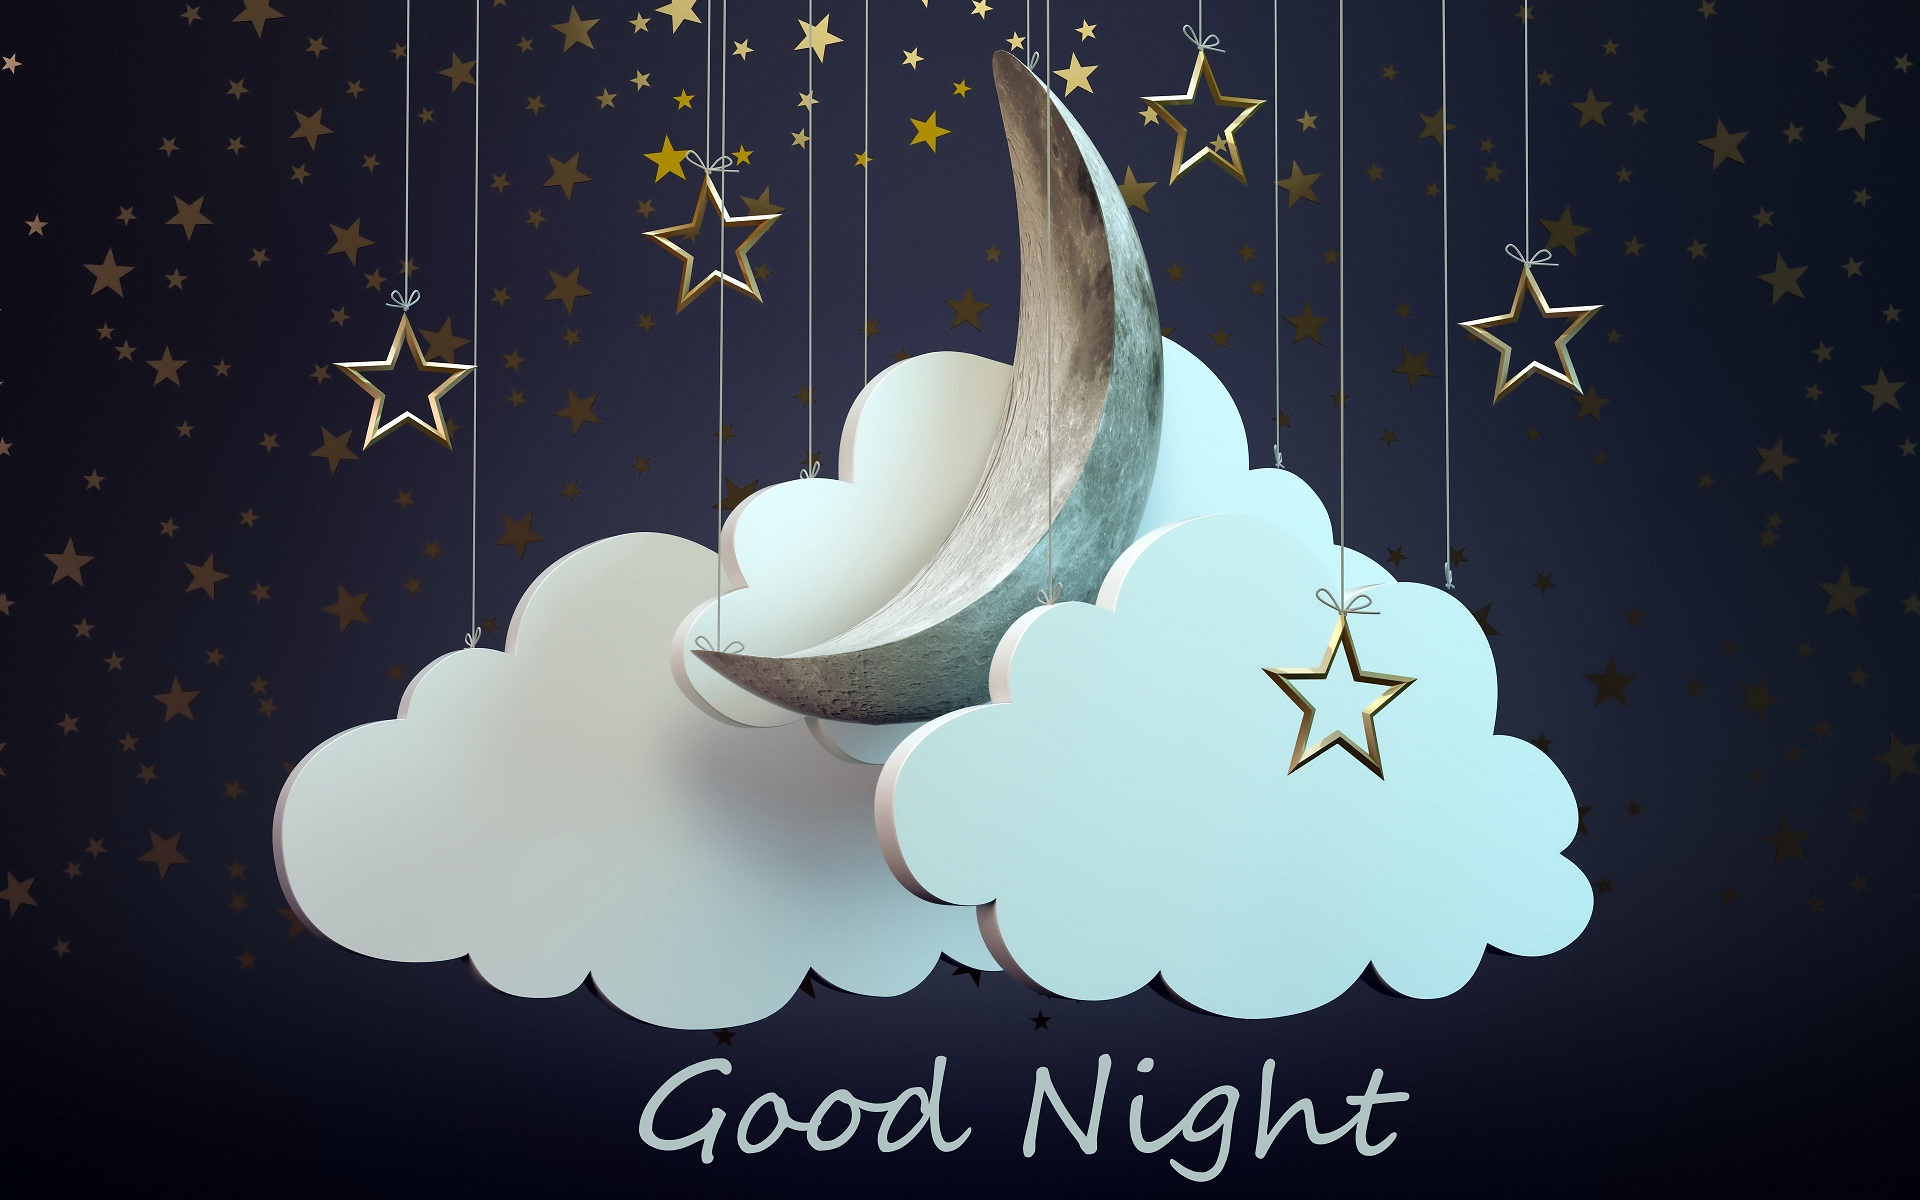 Good Night Wallpapers  Android Apps on Google Play 1920x1200